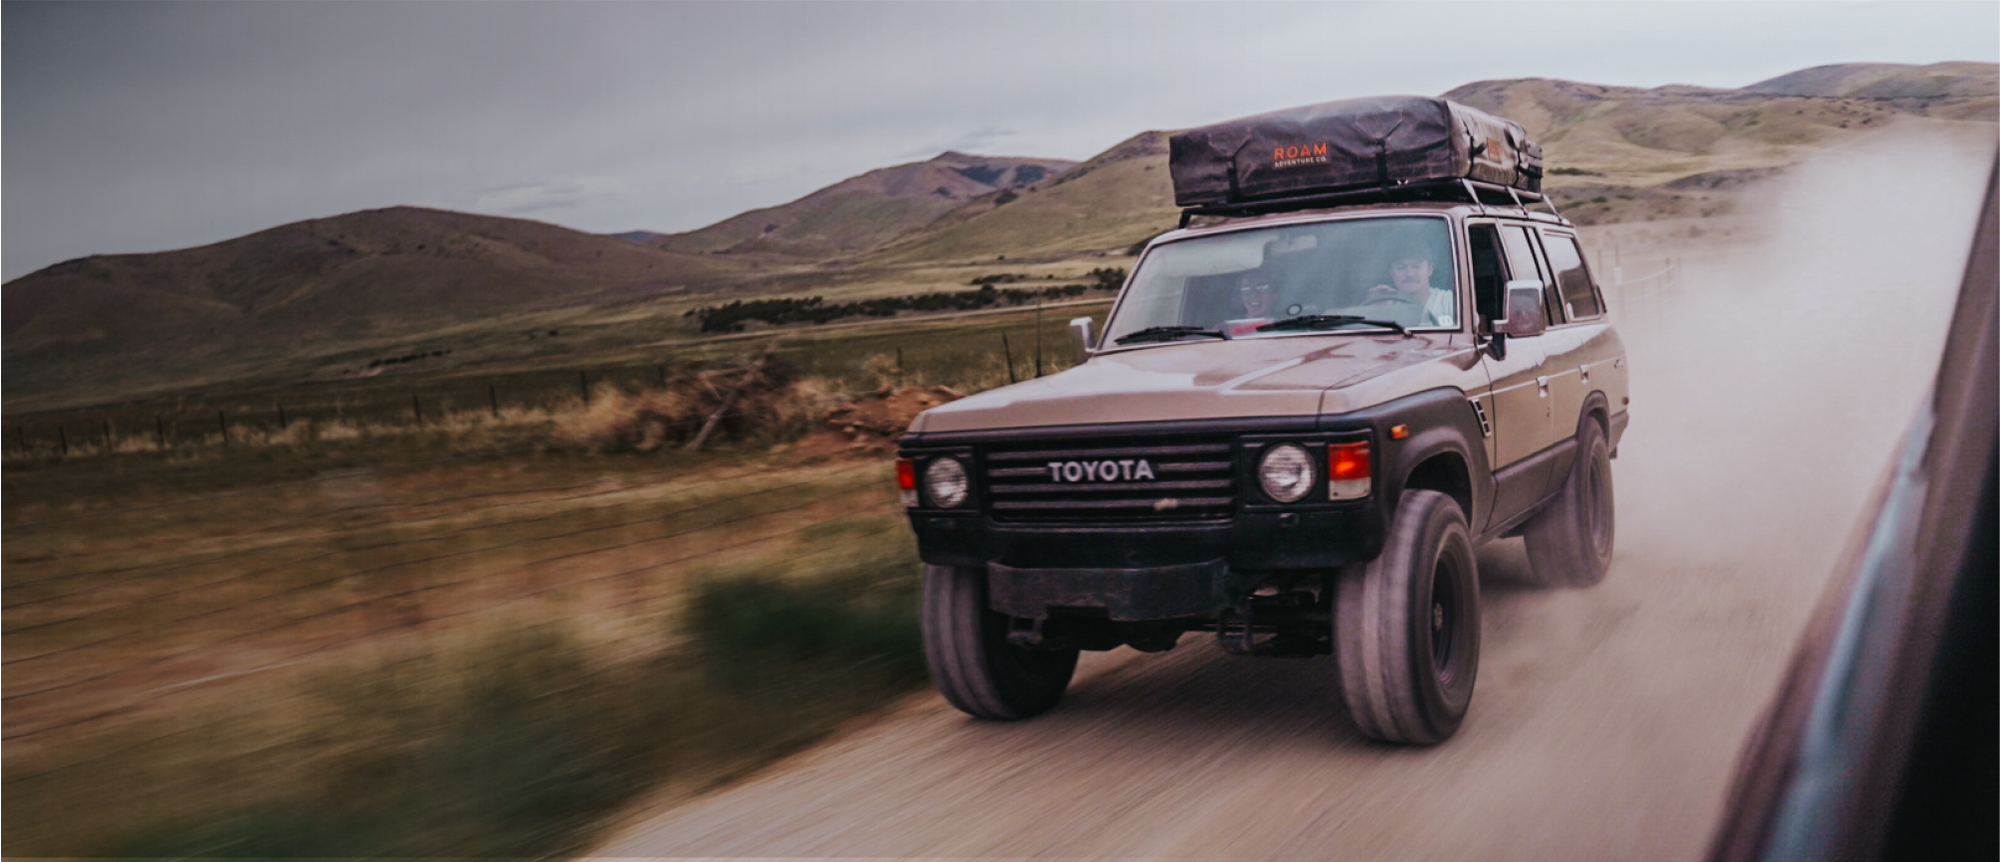 Toyota Land Cruiser with rooftop tent driving on dirt road